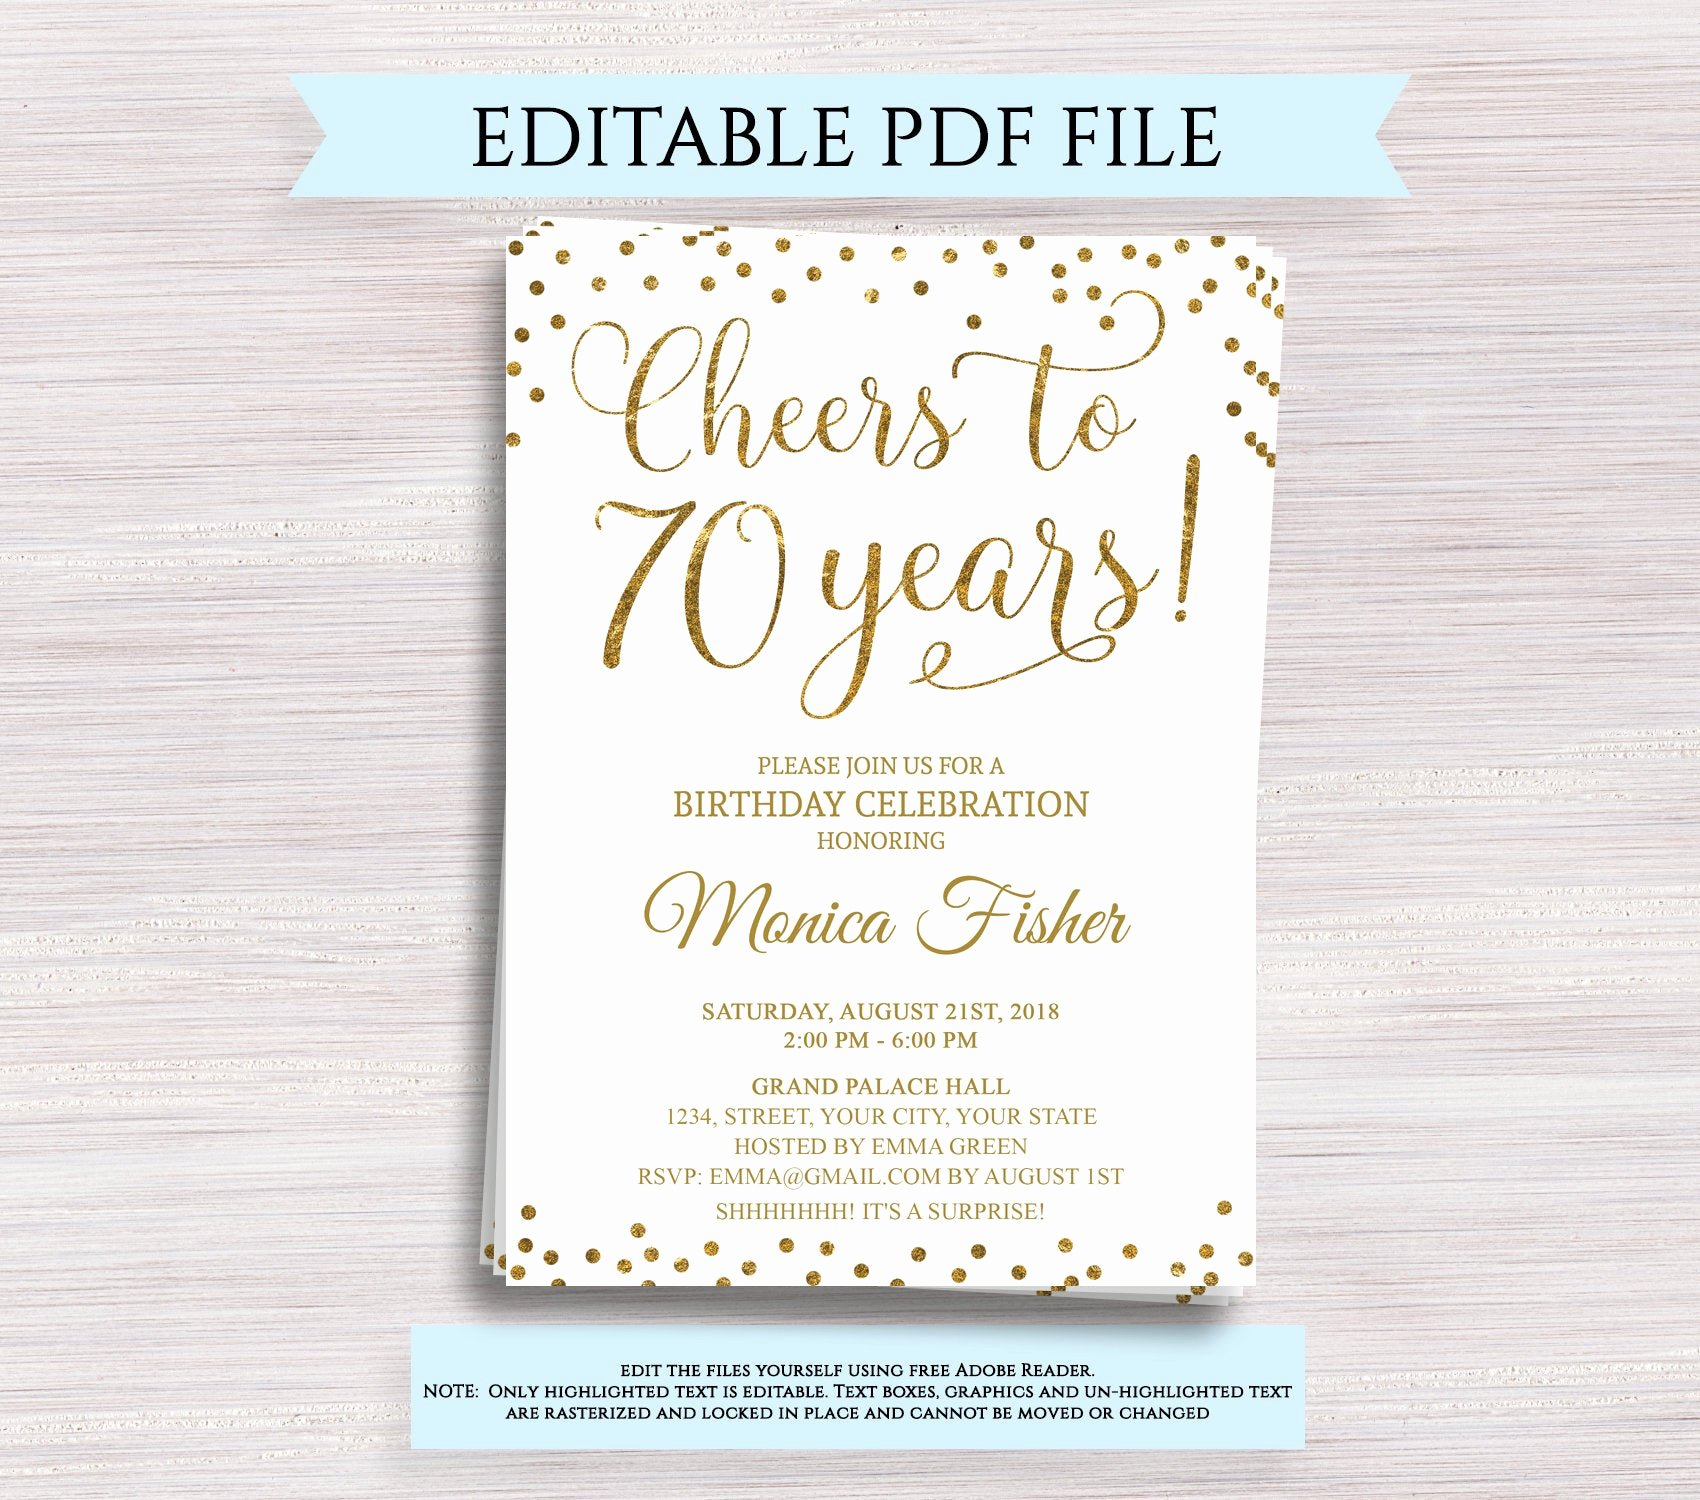 Editable Birthday Invitations Templates Free Elegant Editable 70th Birthday Party Invitation Template Cheers to